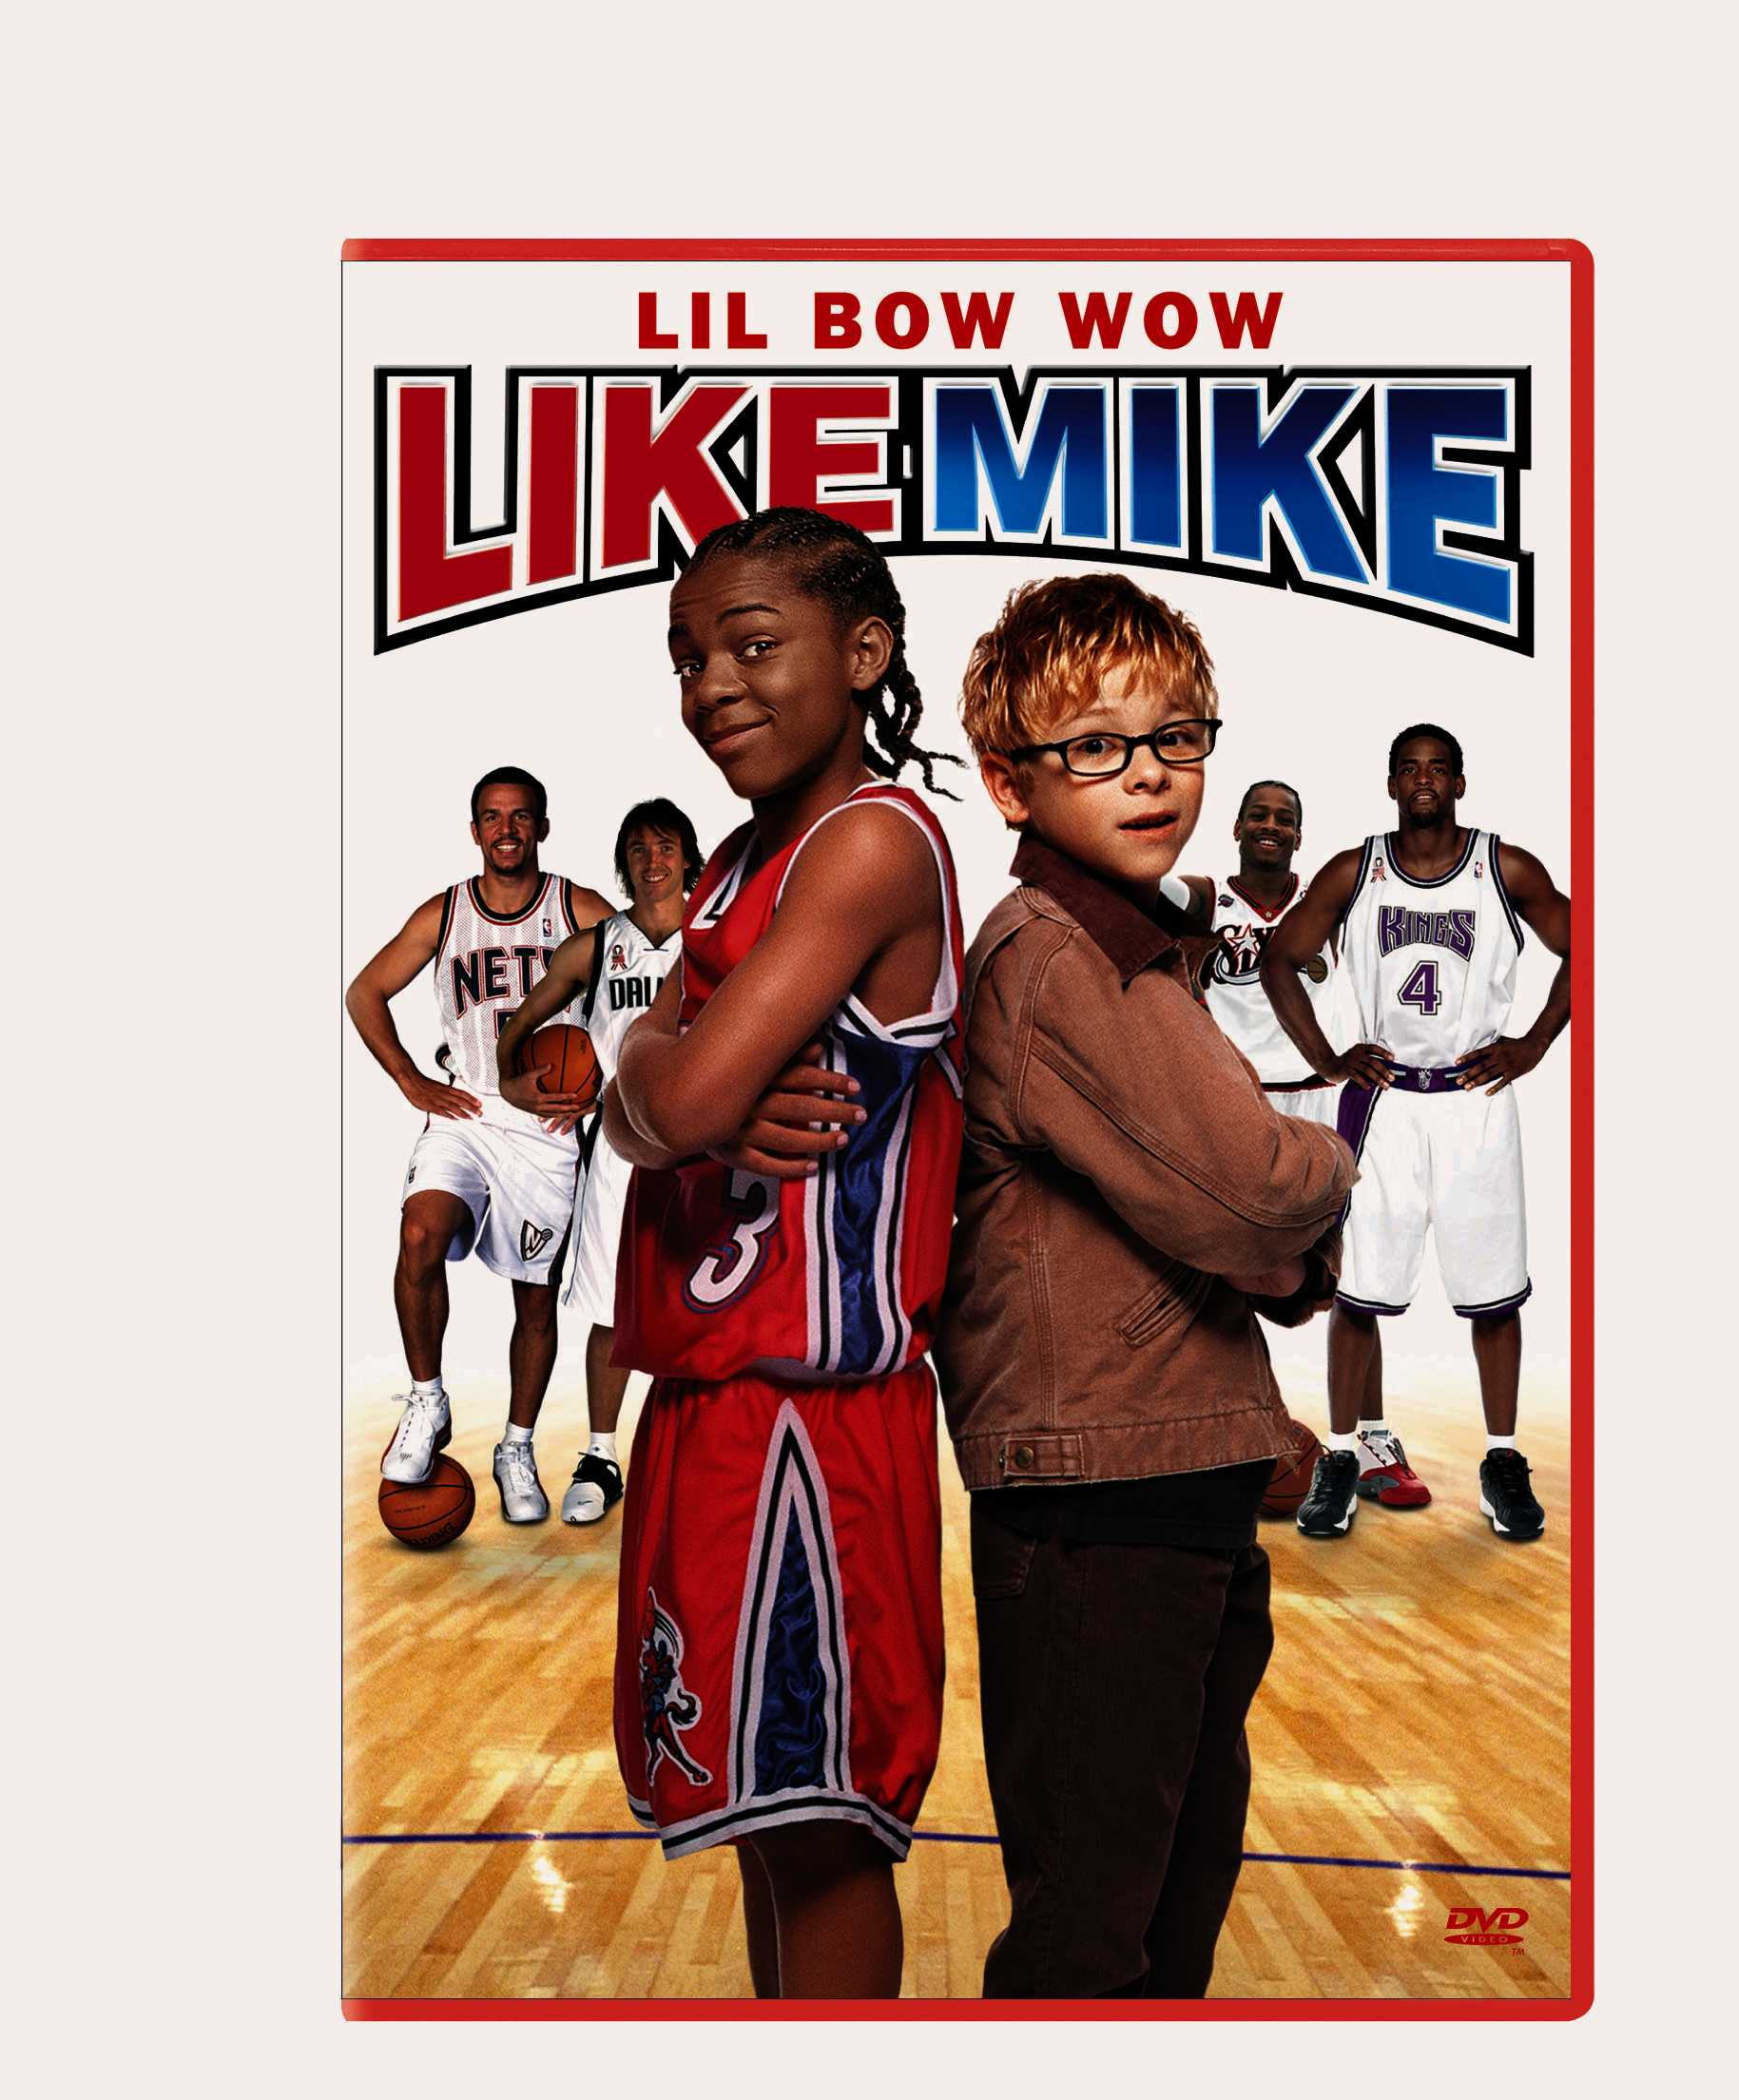 LIKE MIKE BY LIL BOW WOW (DVD)